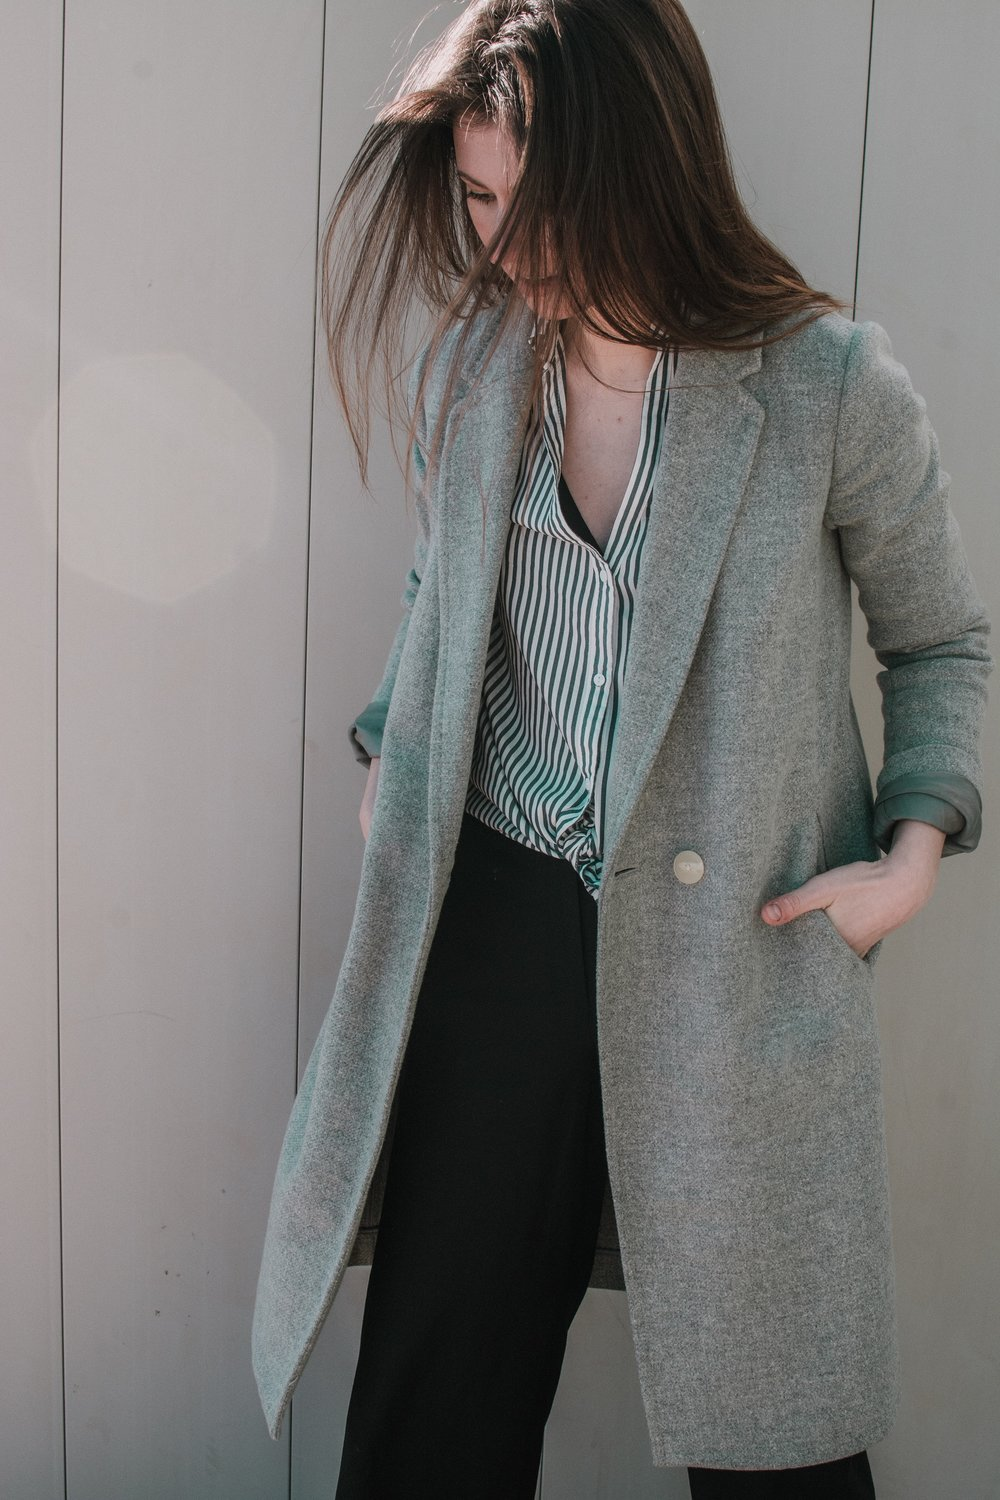 Menswear Inspired7 - styleapotheca